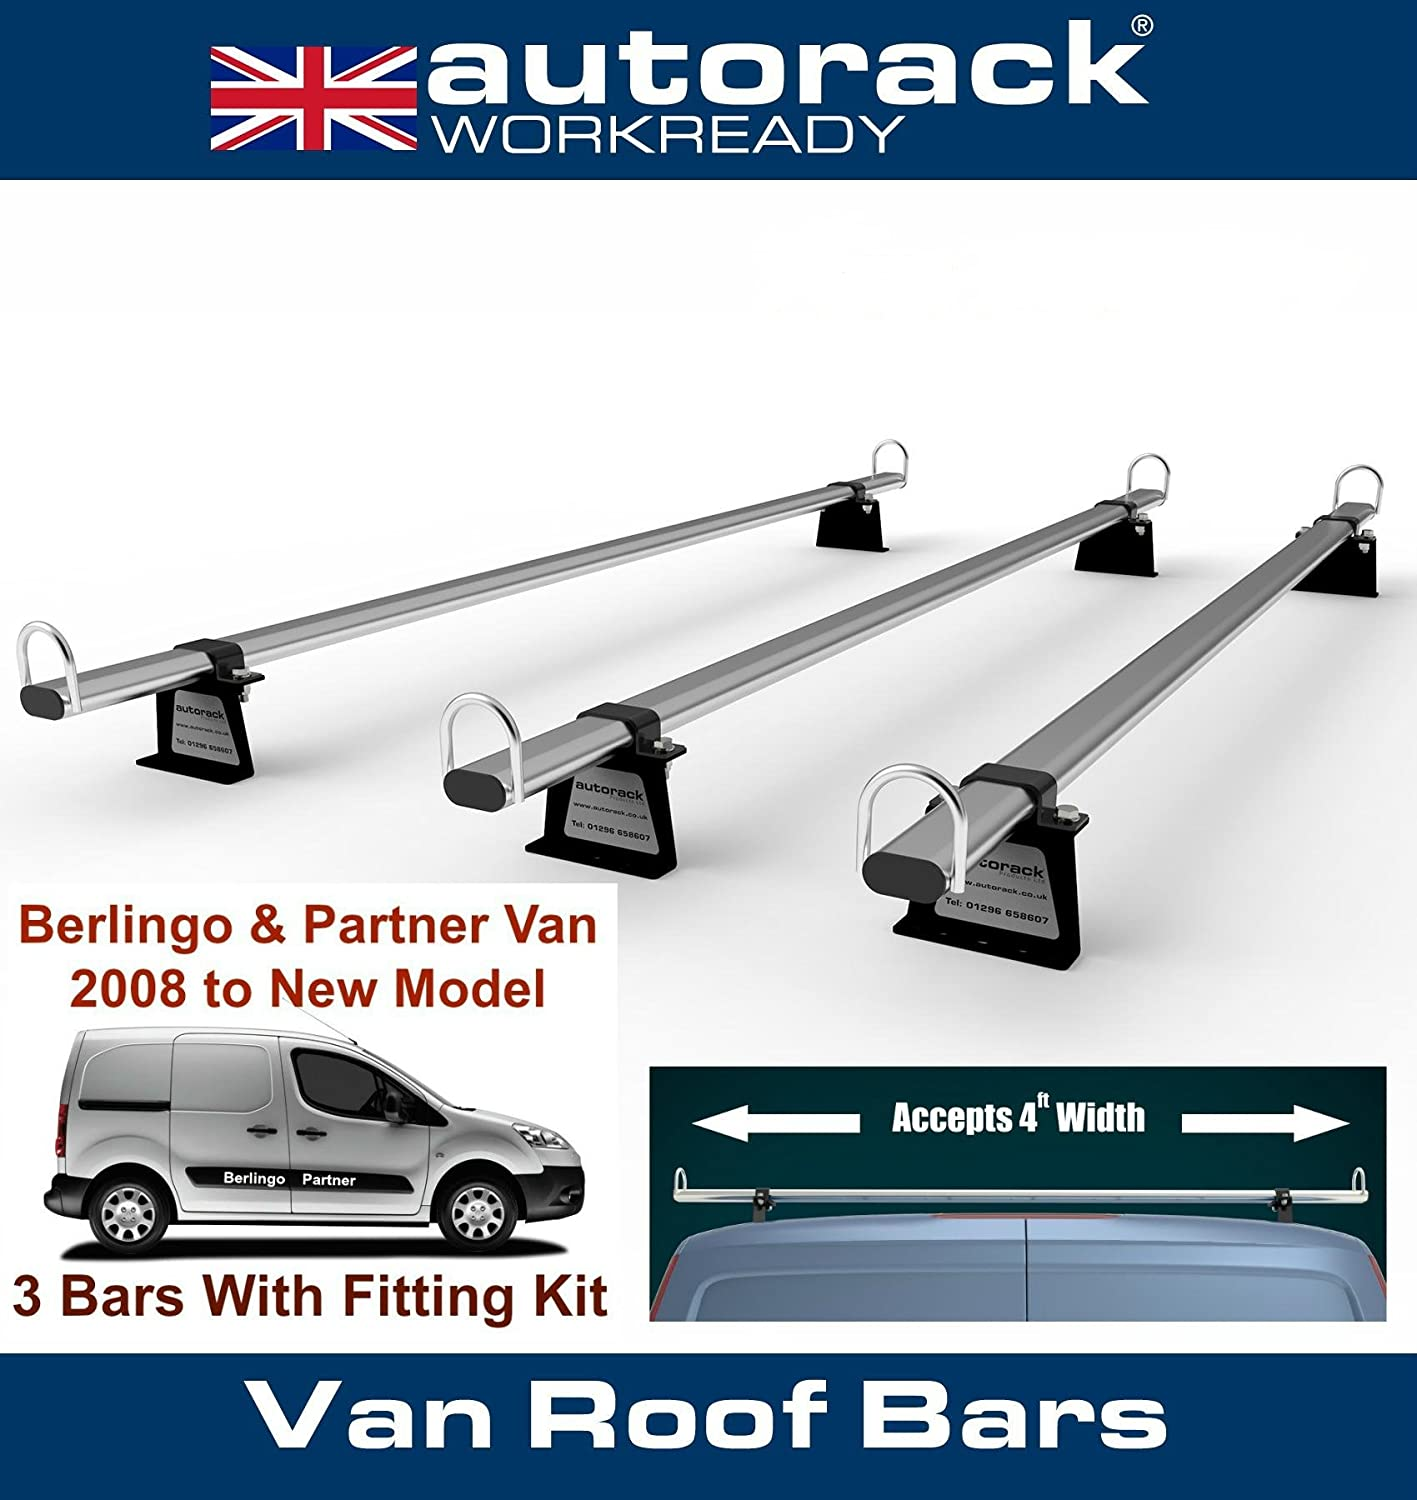 Autorack WorkReady Van Roof Rack Bars for - PEUGEOT PARTNER (2009-to-NEW Model Range) - 3 BARS Autorack Products